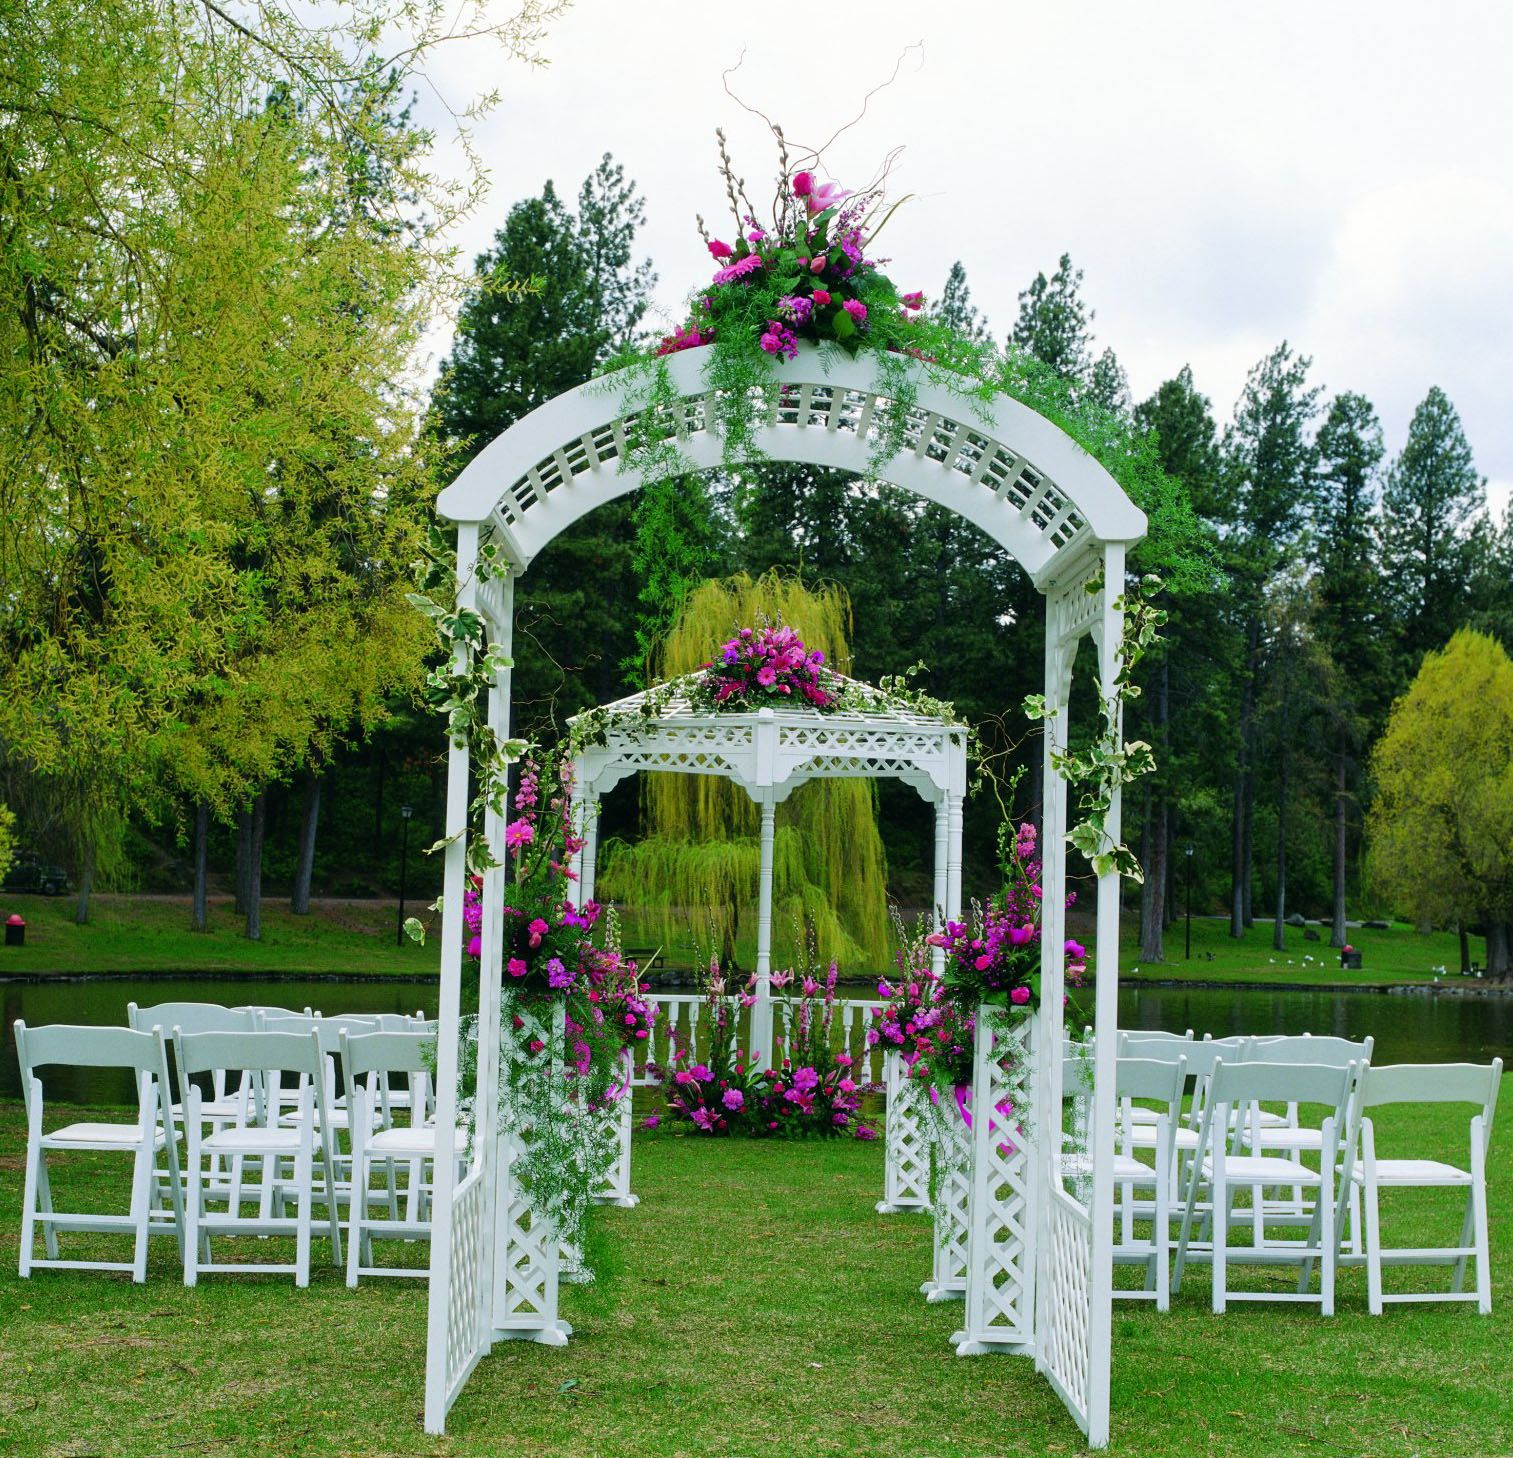 decorating ideas for outside wedding ceremony%0A Decorating Wedding Arches Columns   Arches  Gazebos  Pipe and Drape  and  Ceiling Decor